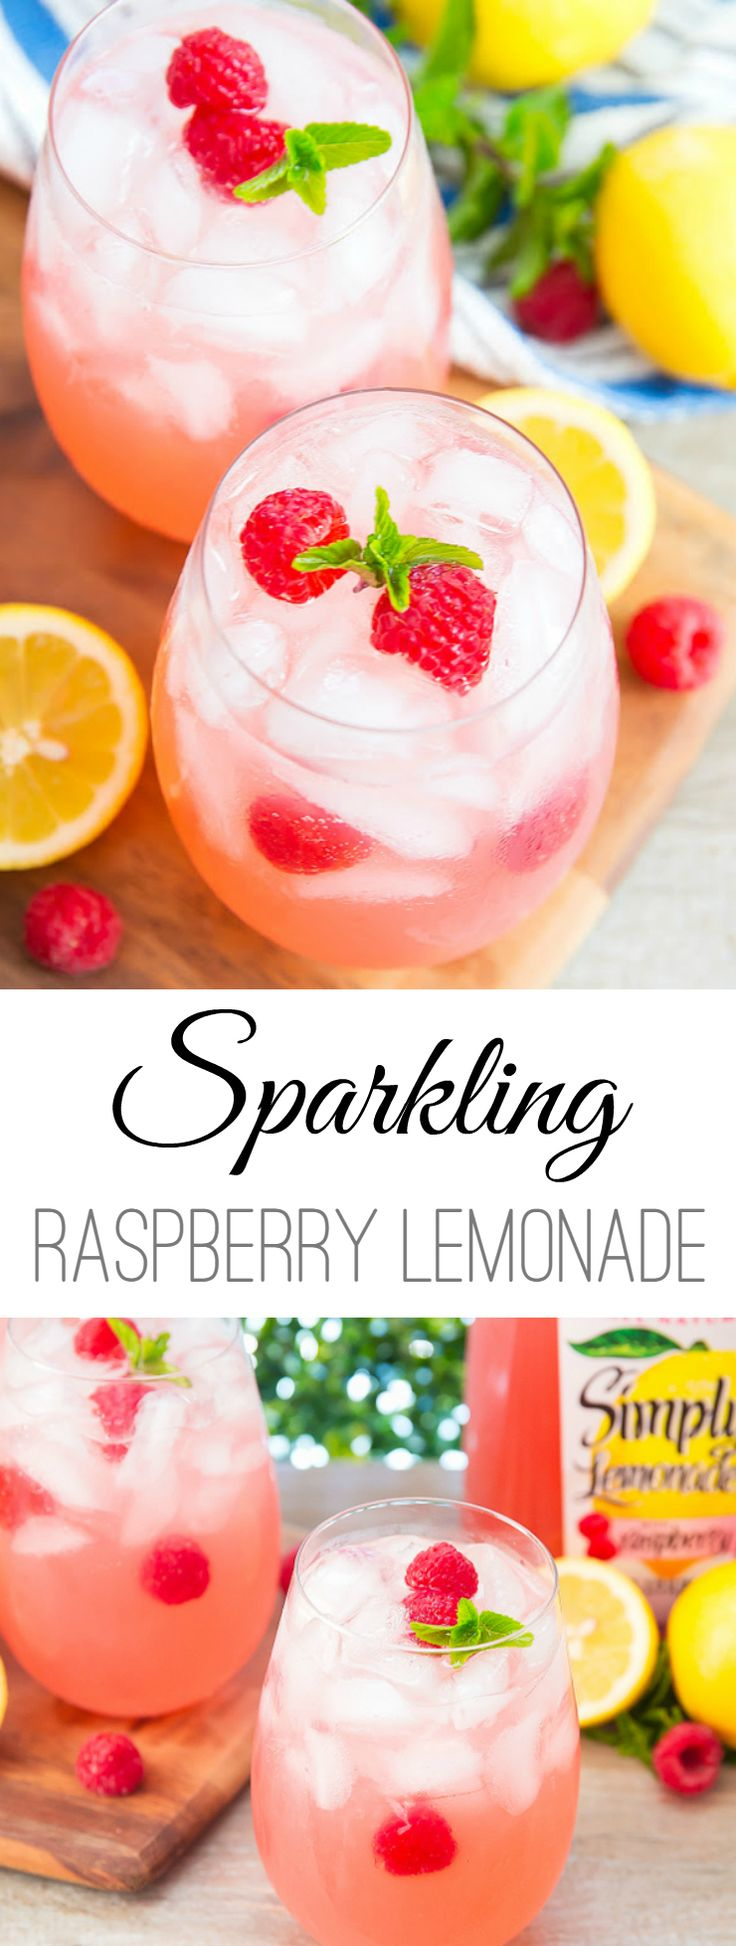 Sparkling Raspberry Lemonade Cocktails make an easy and refreshing summer drink #ad